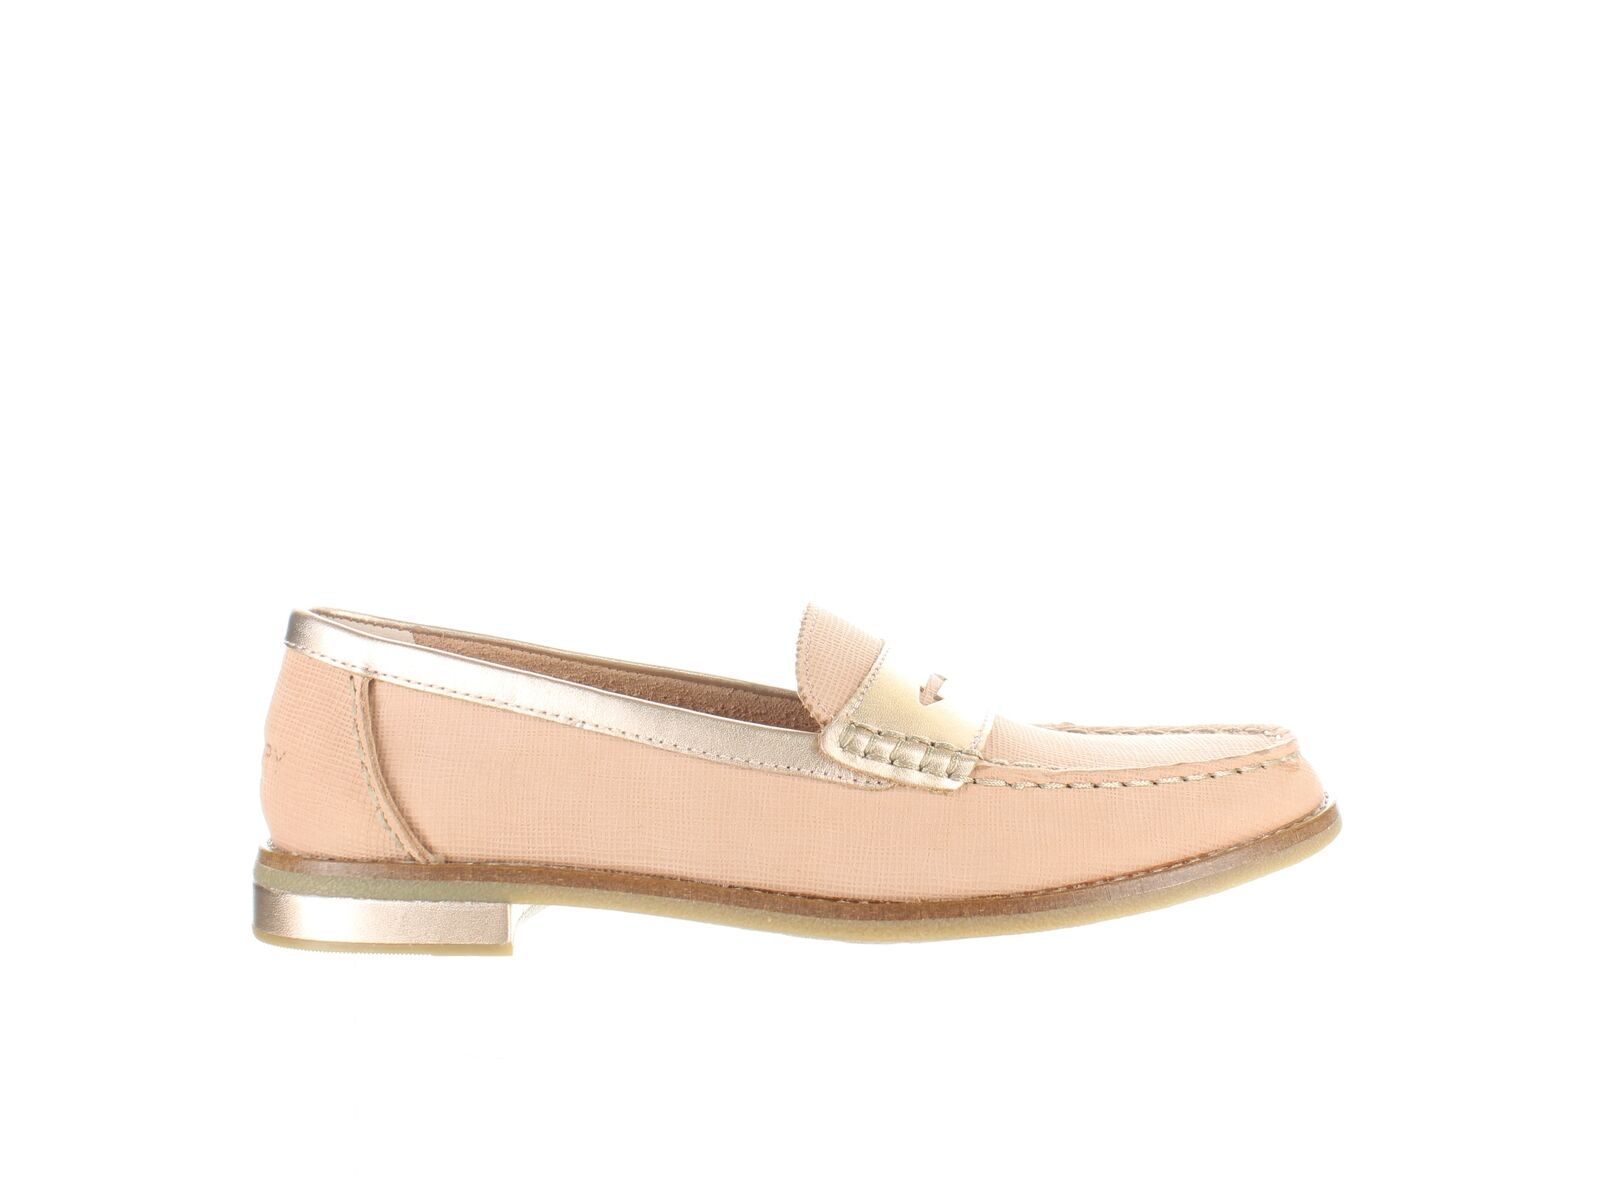 Sperry Top Sider Womens Seaport Blush Loafers Size 8 (1879268)